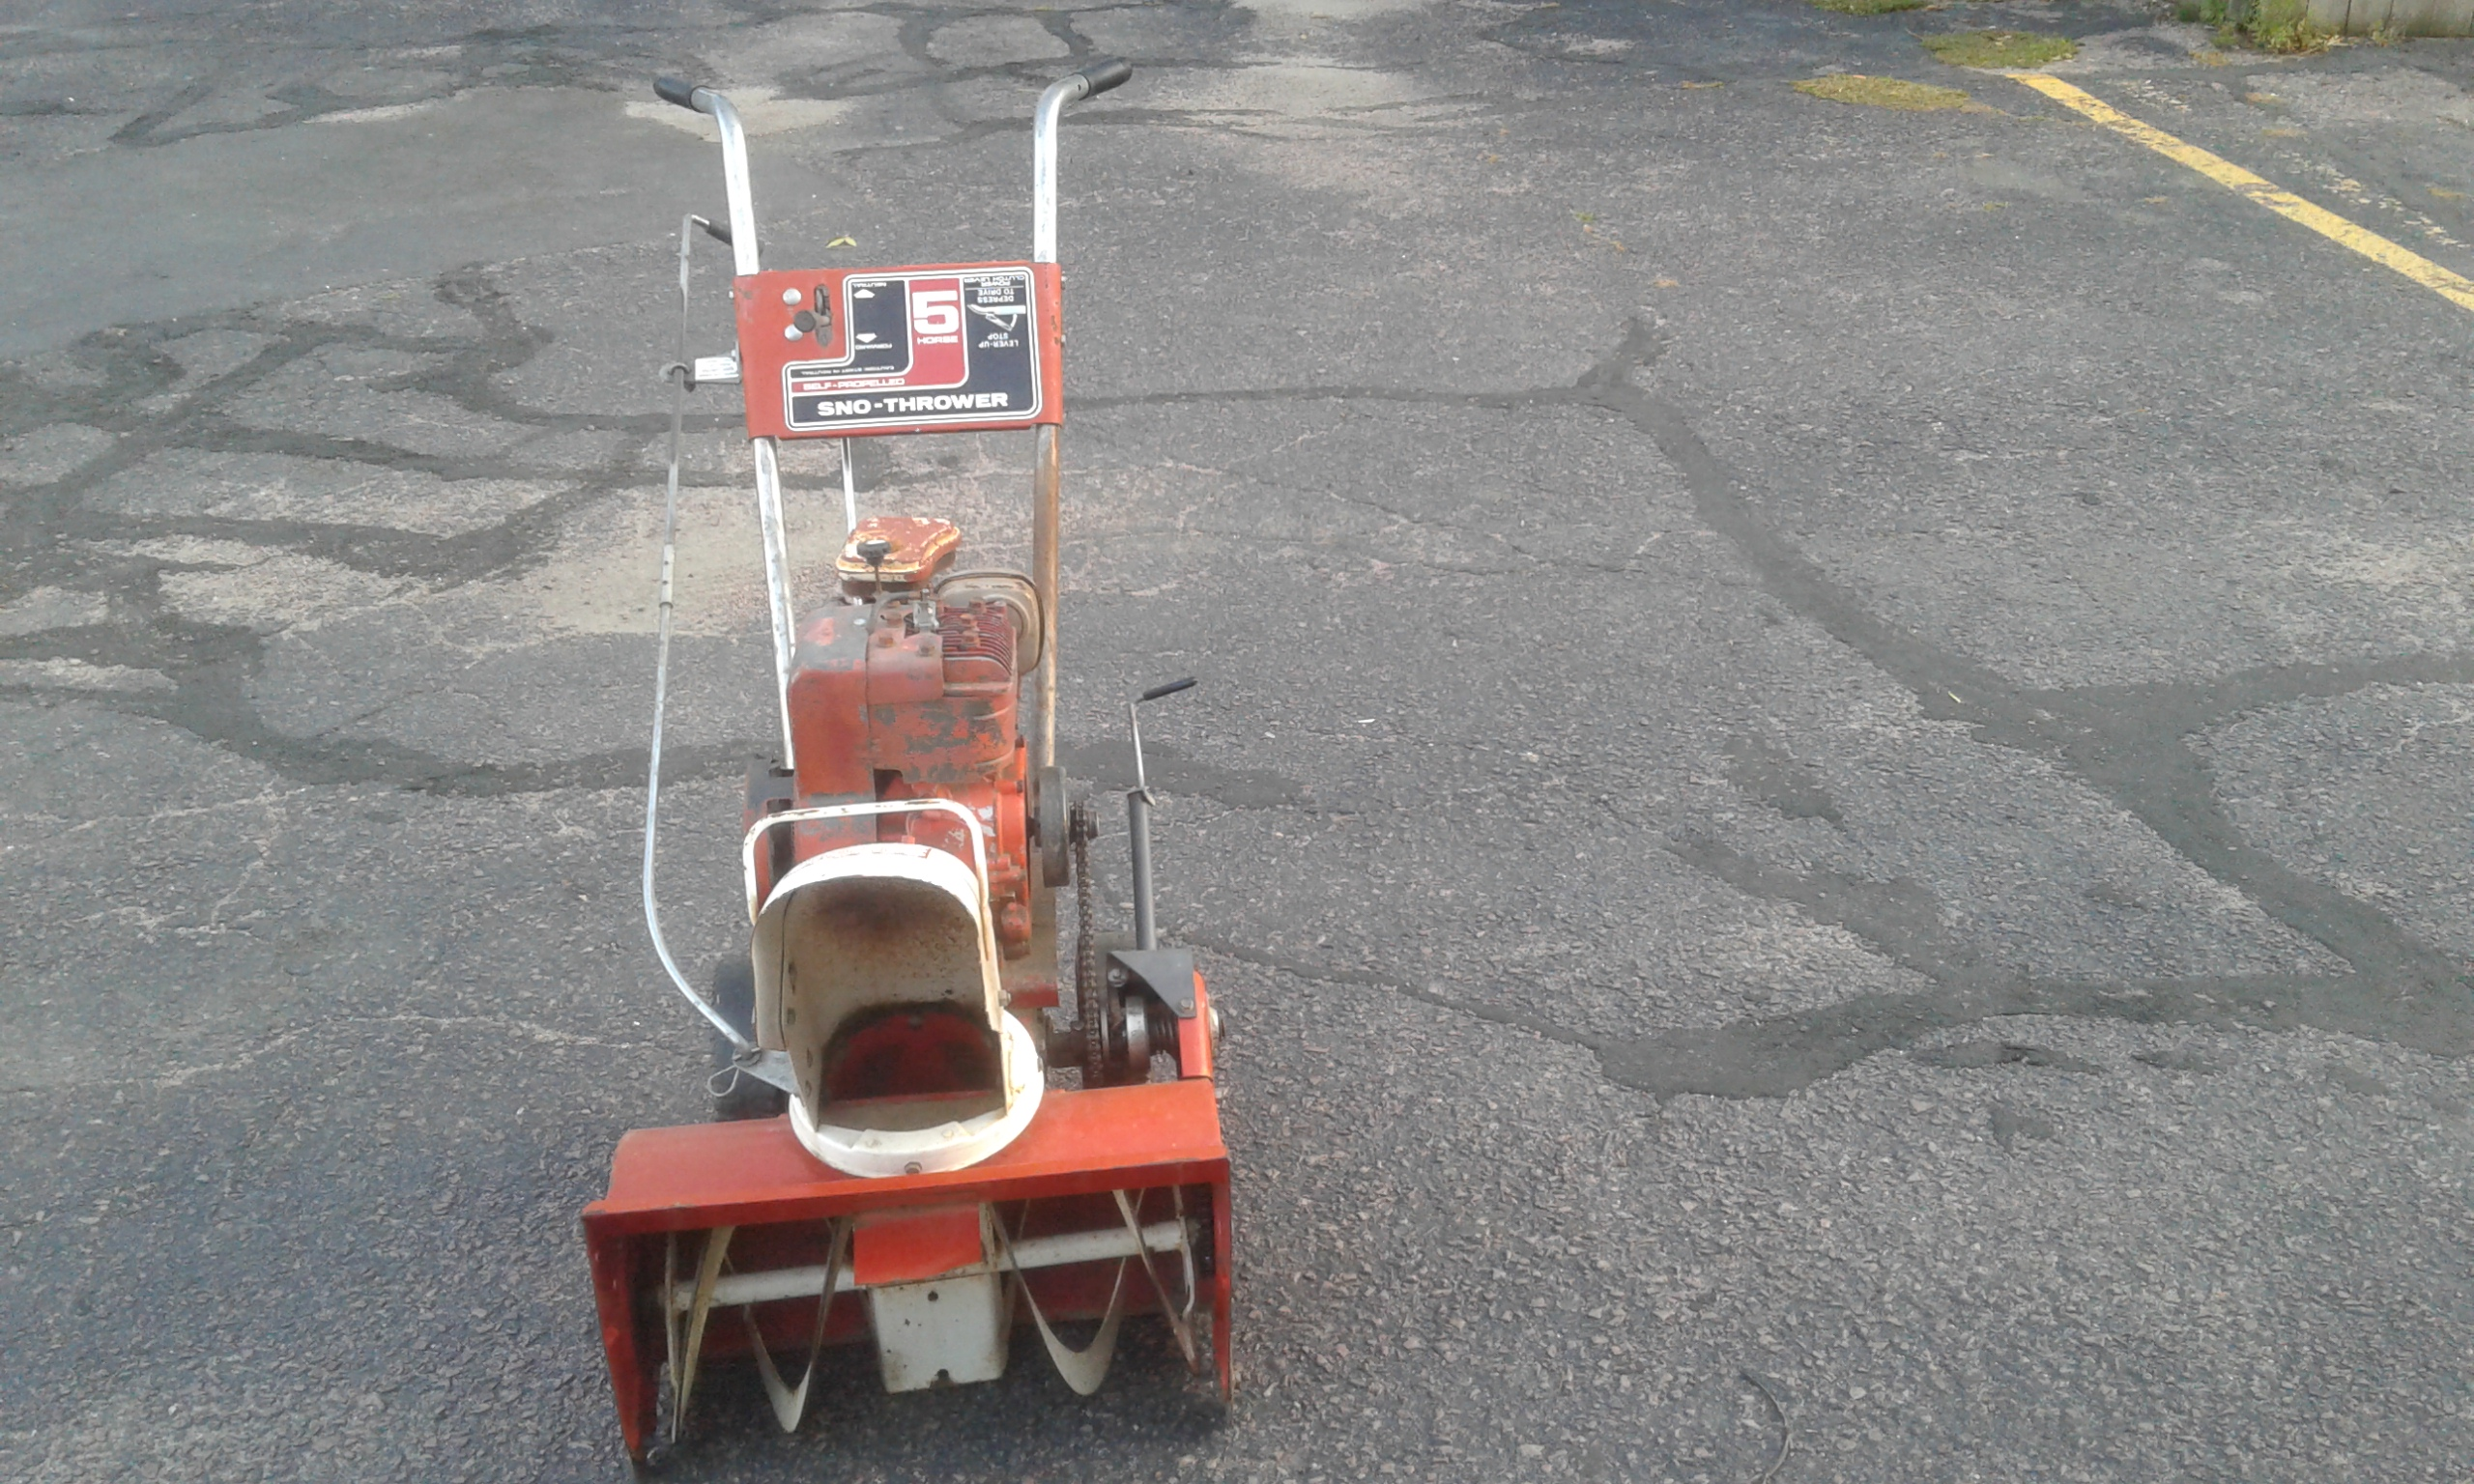 Briggs and stratton snow throwrt